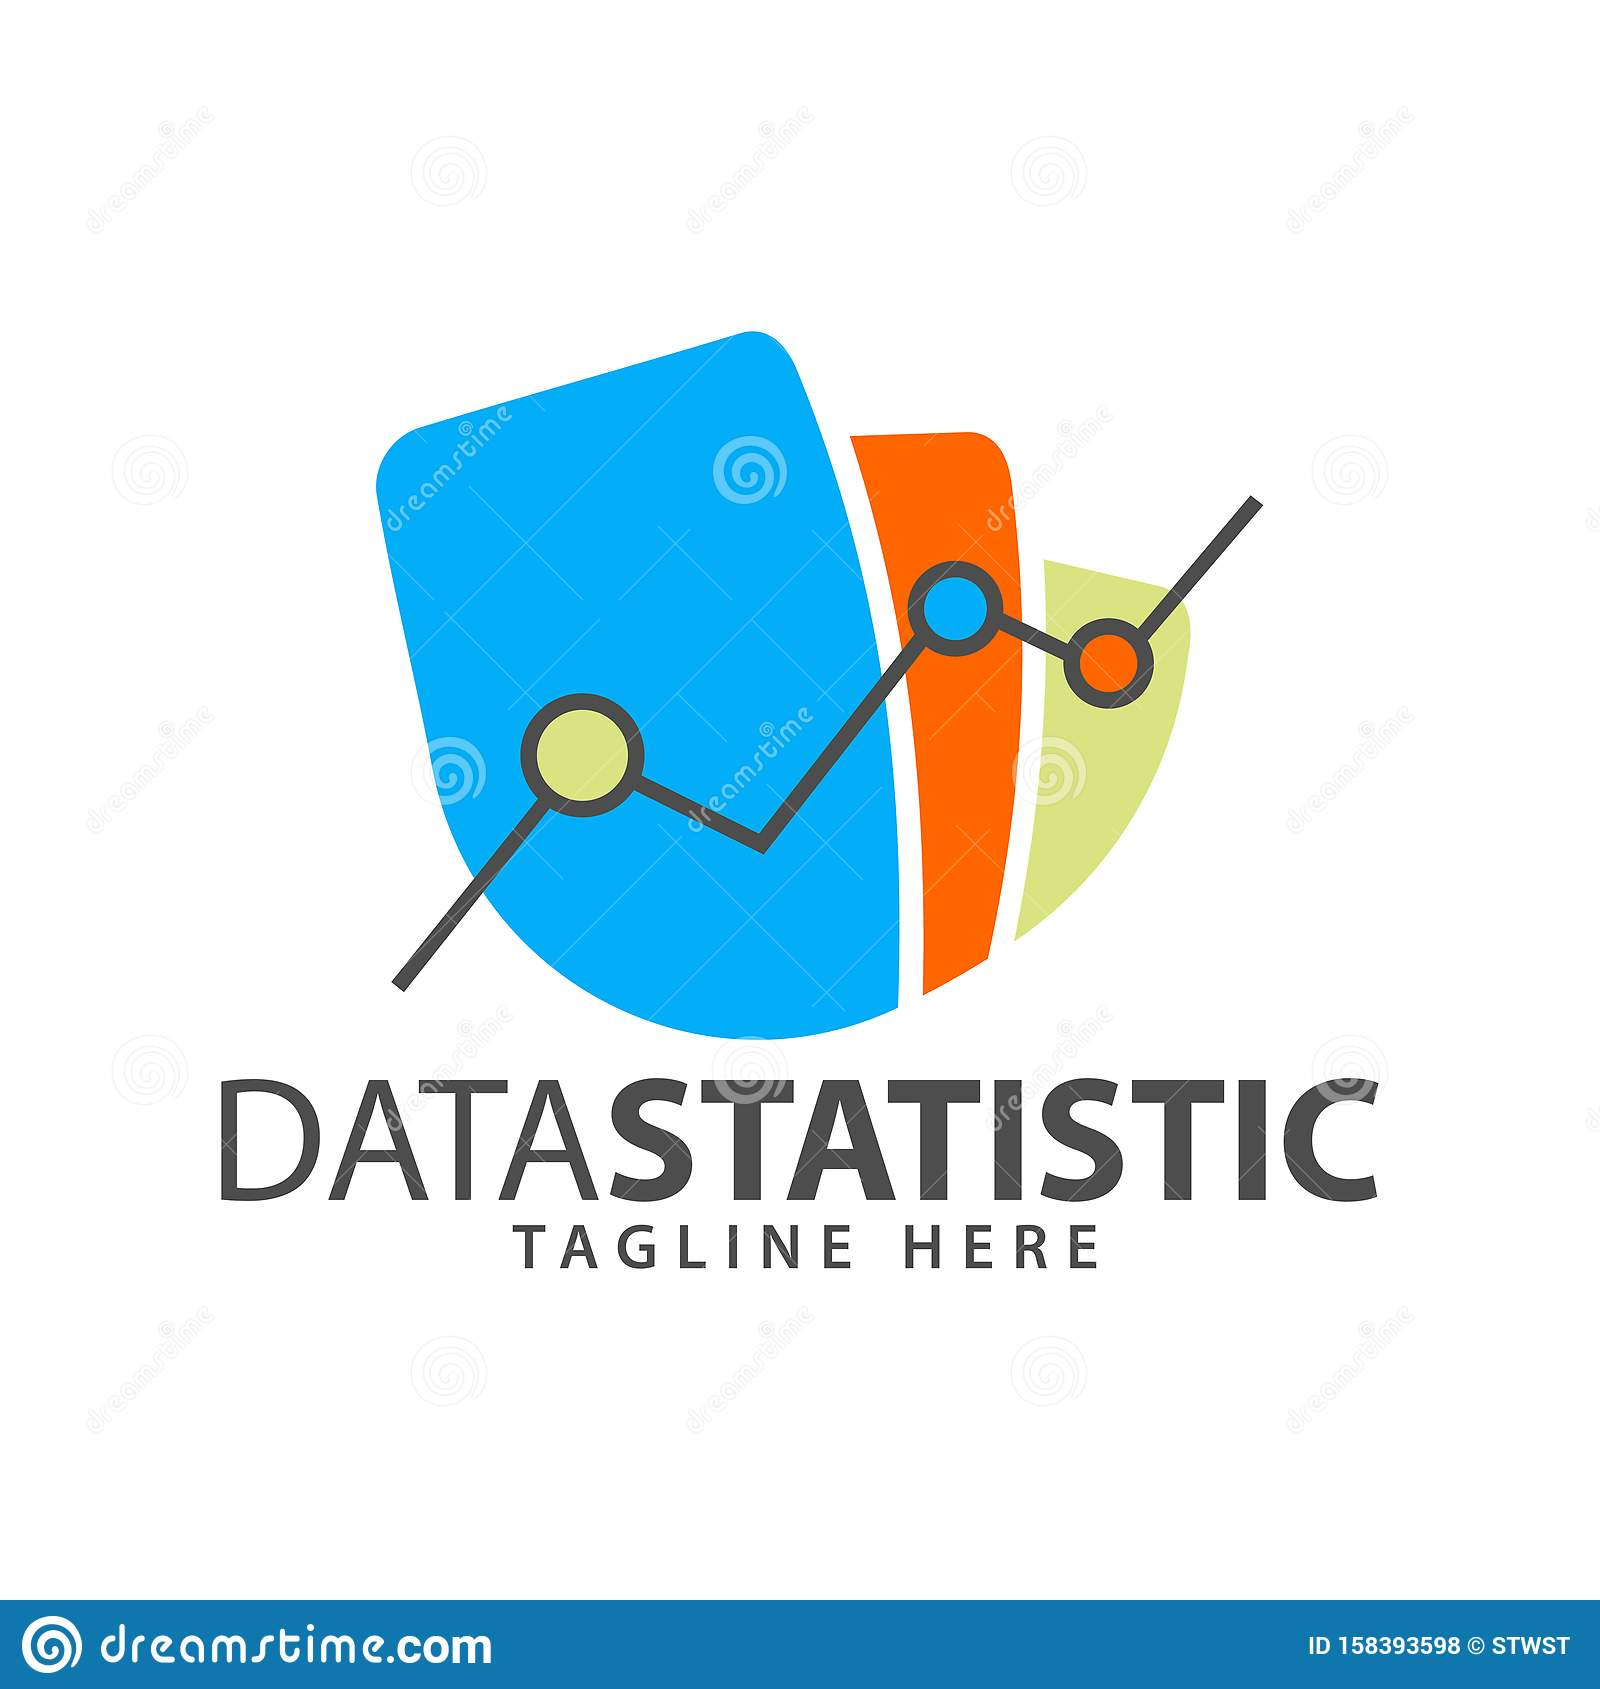 Cash book spreadsheet bank reconciliation form delivery docket template statement of account petty cash log petty cash vouchers. Business Logo Data Statistics And Bookkeeping Templates With Color Diagrams Stock Vector Illustration Of Design Achievement 158393598